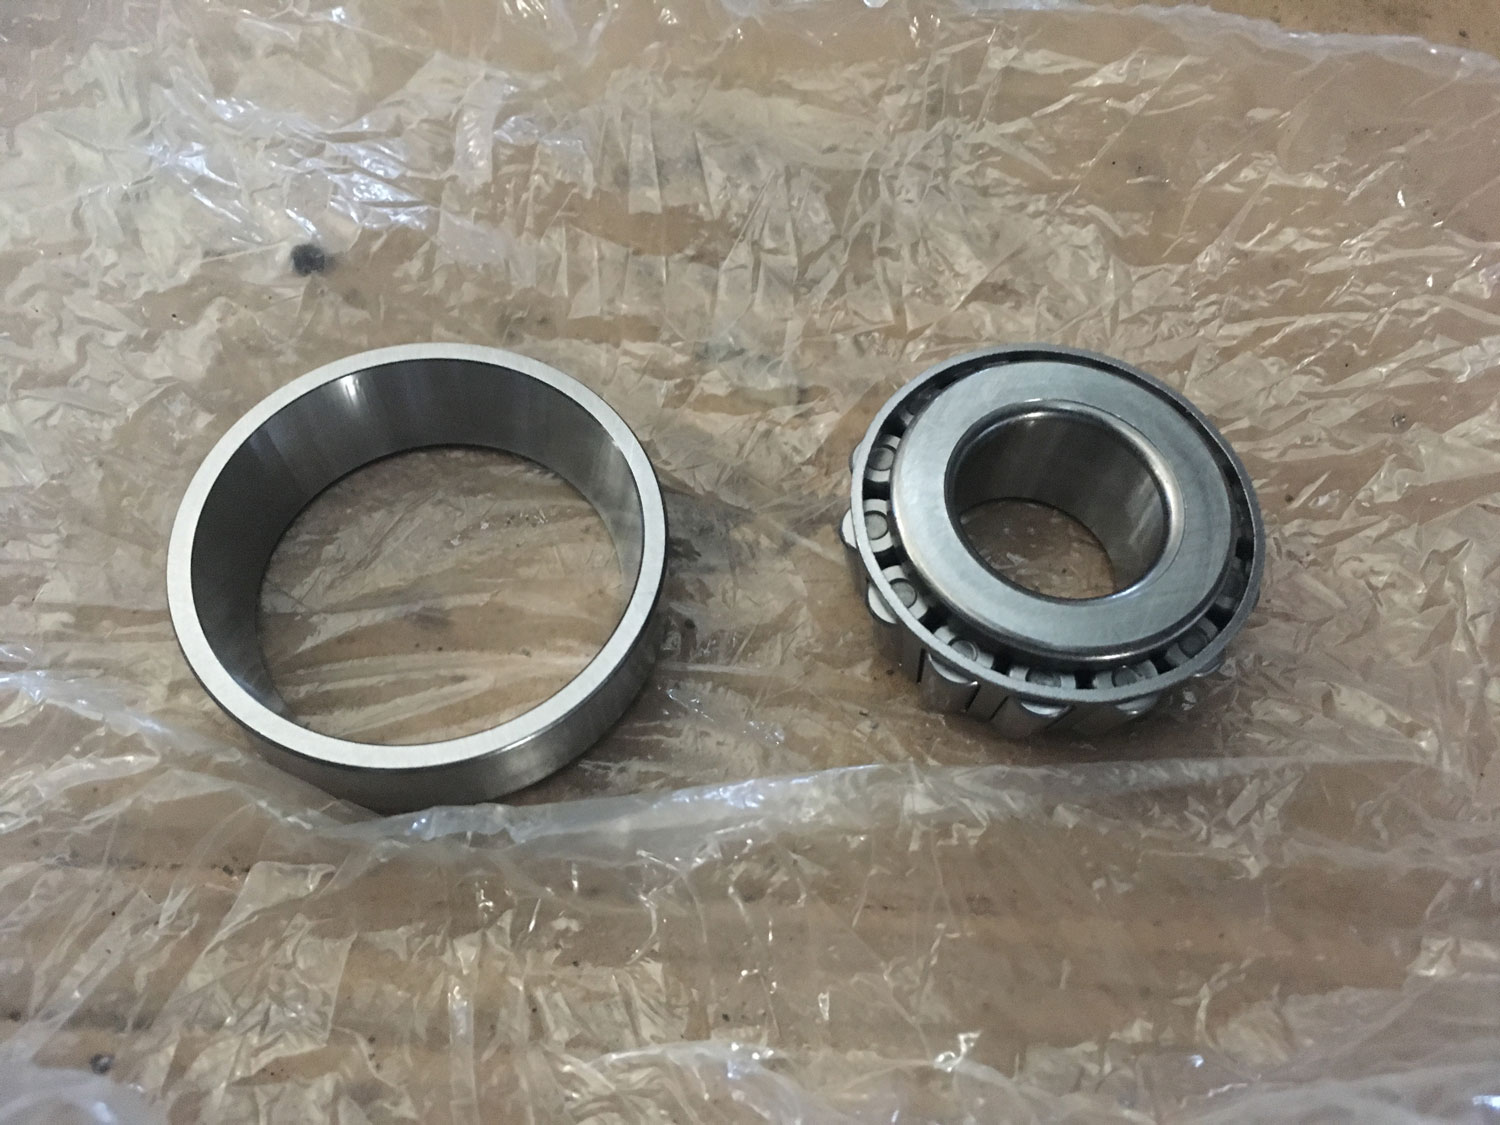 new bearing and race